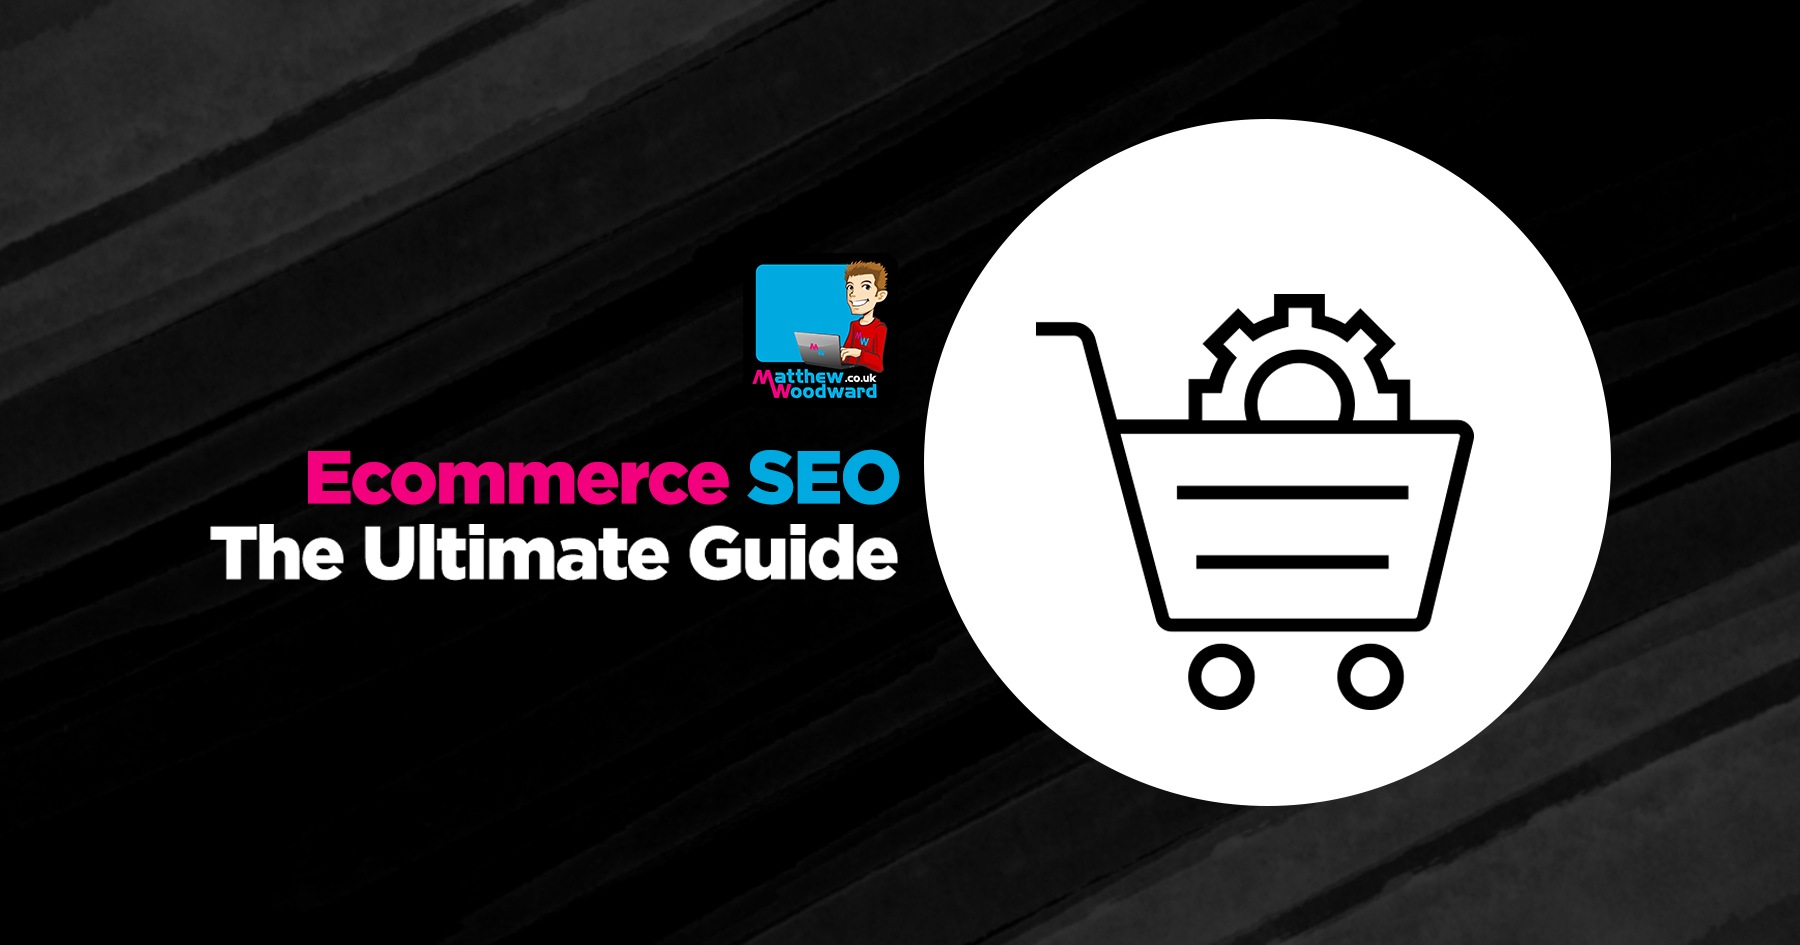 Ecommerce SEO: How To Increase Traffic To Your Store